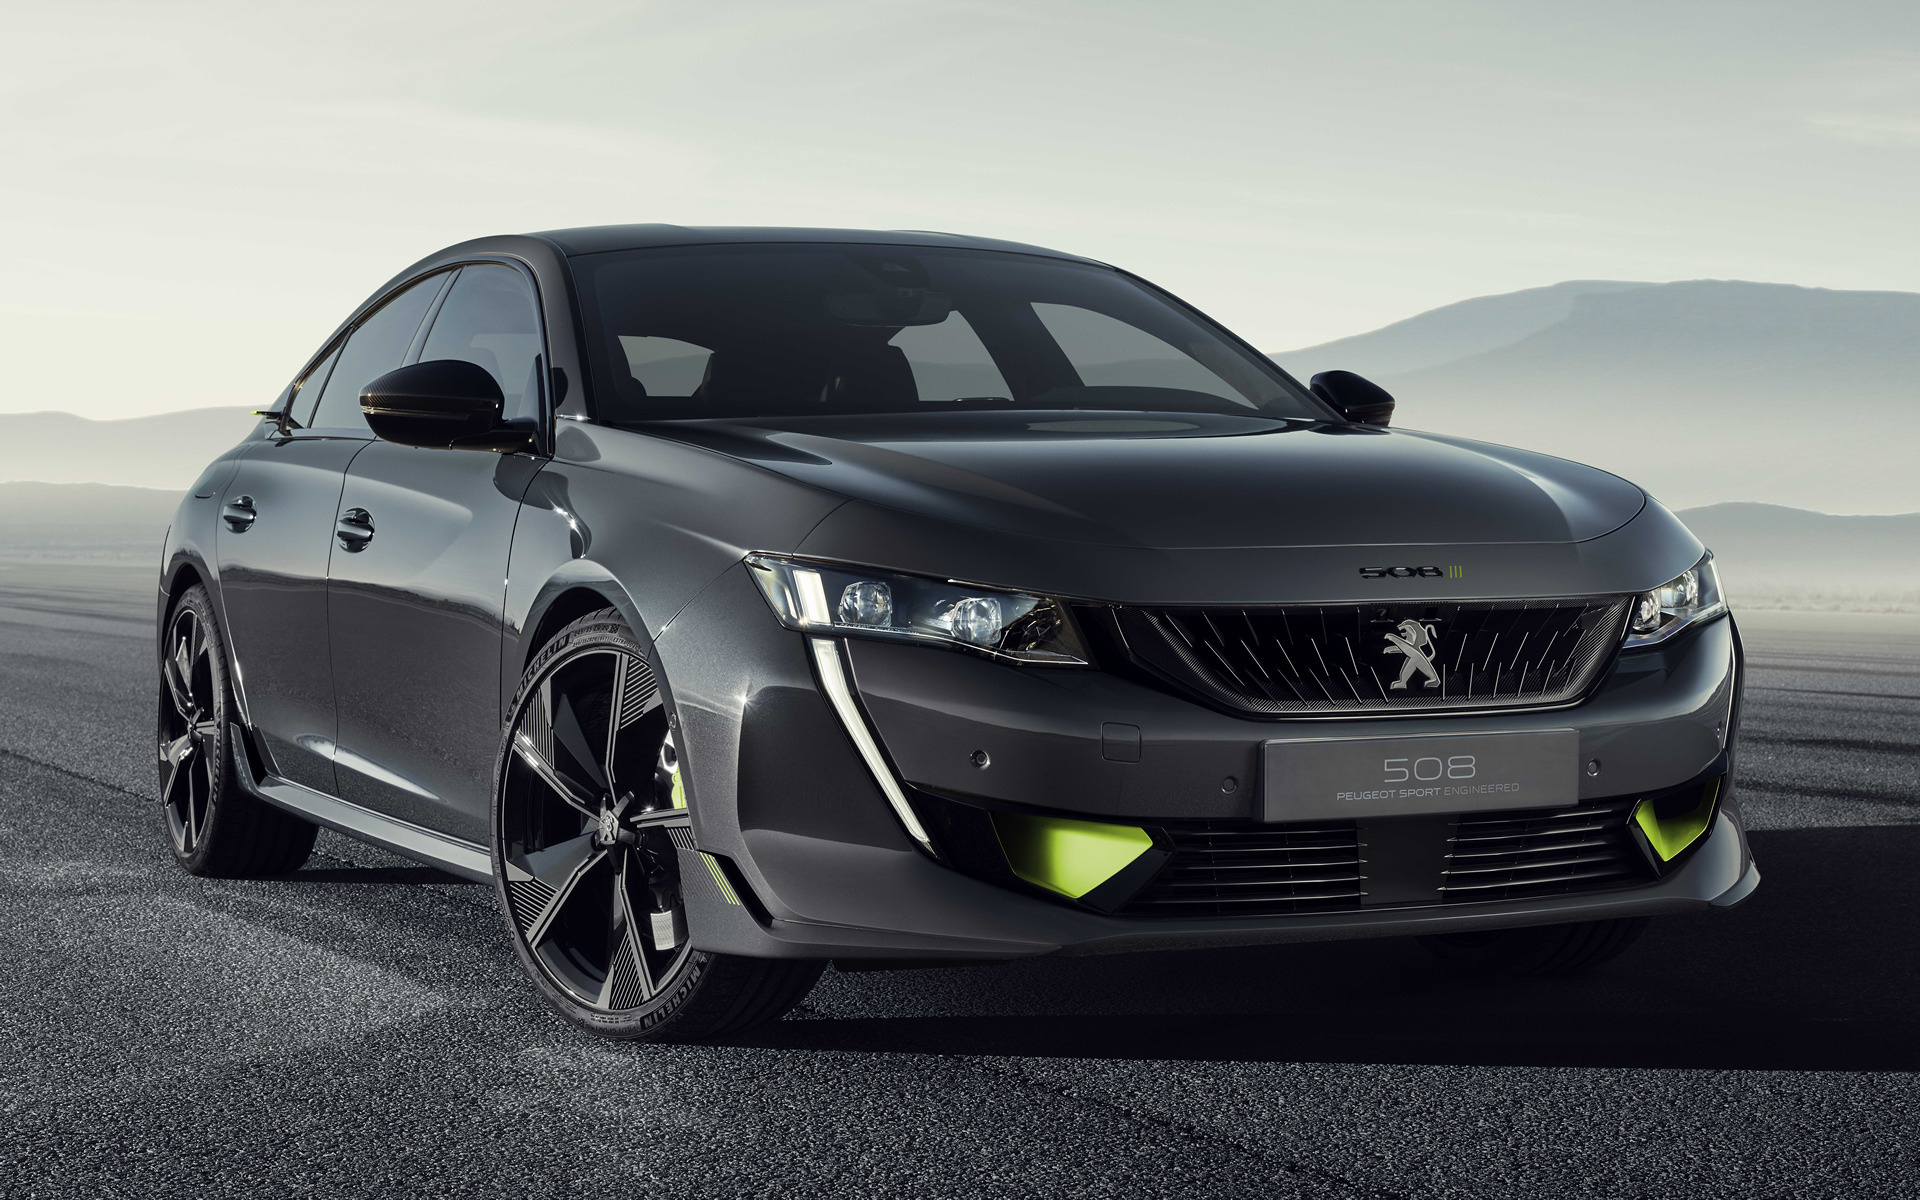 2019 Concept 508 Peugeot Sport Engineered